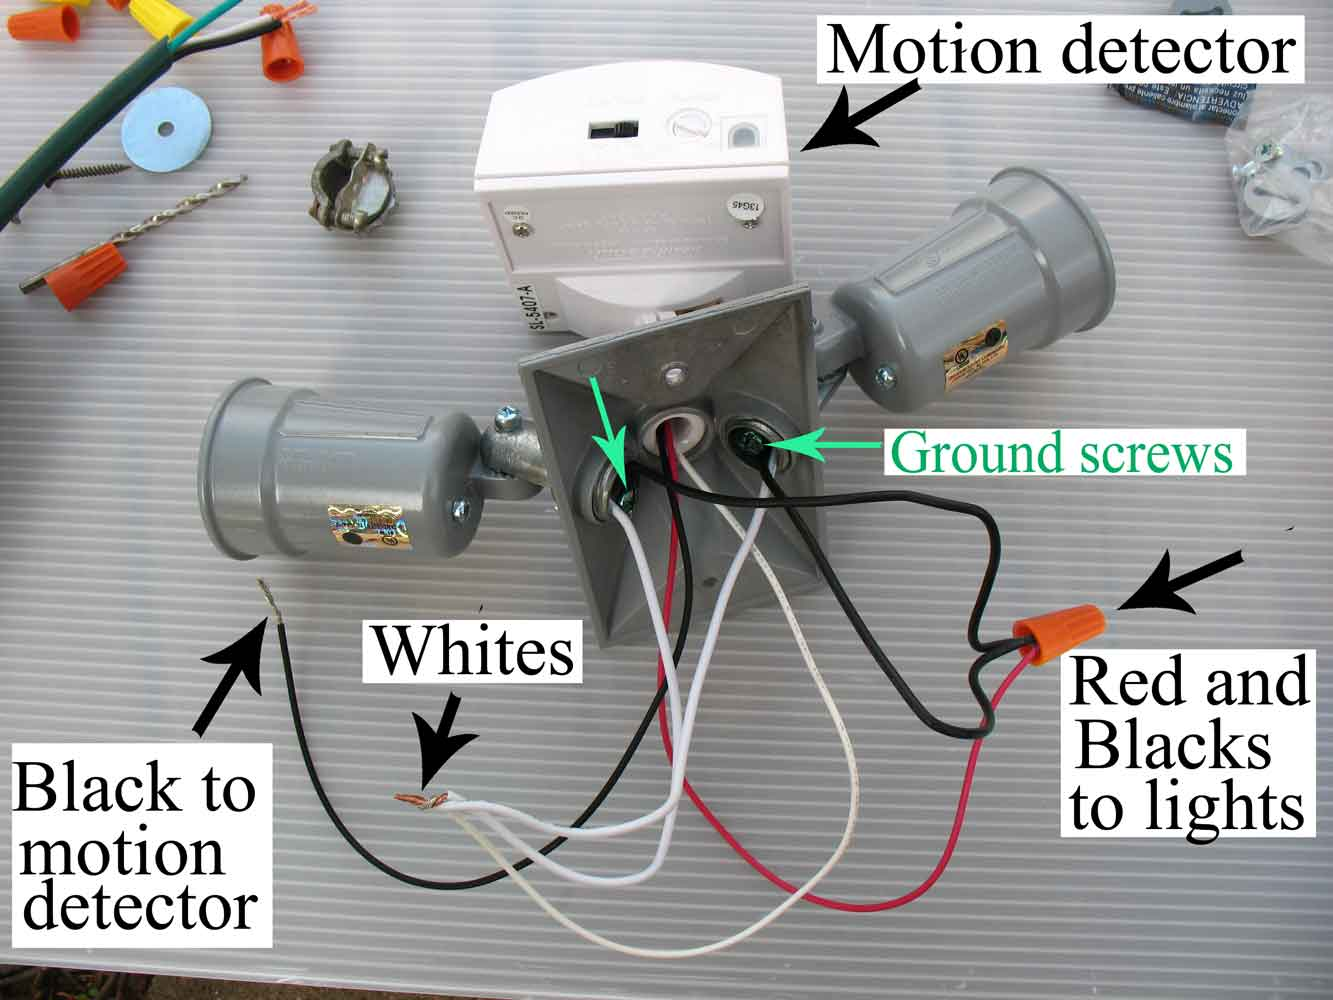 IMG_0014 Motion detector how to wire motion sensor occupancy sensors Leviton Motion Sensor Wiring Diagram at crackthecode.co